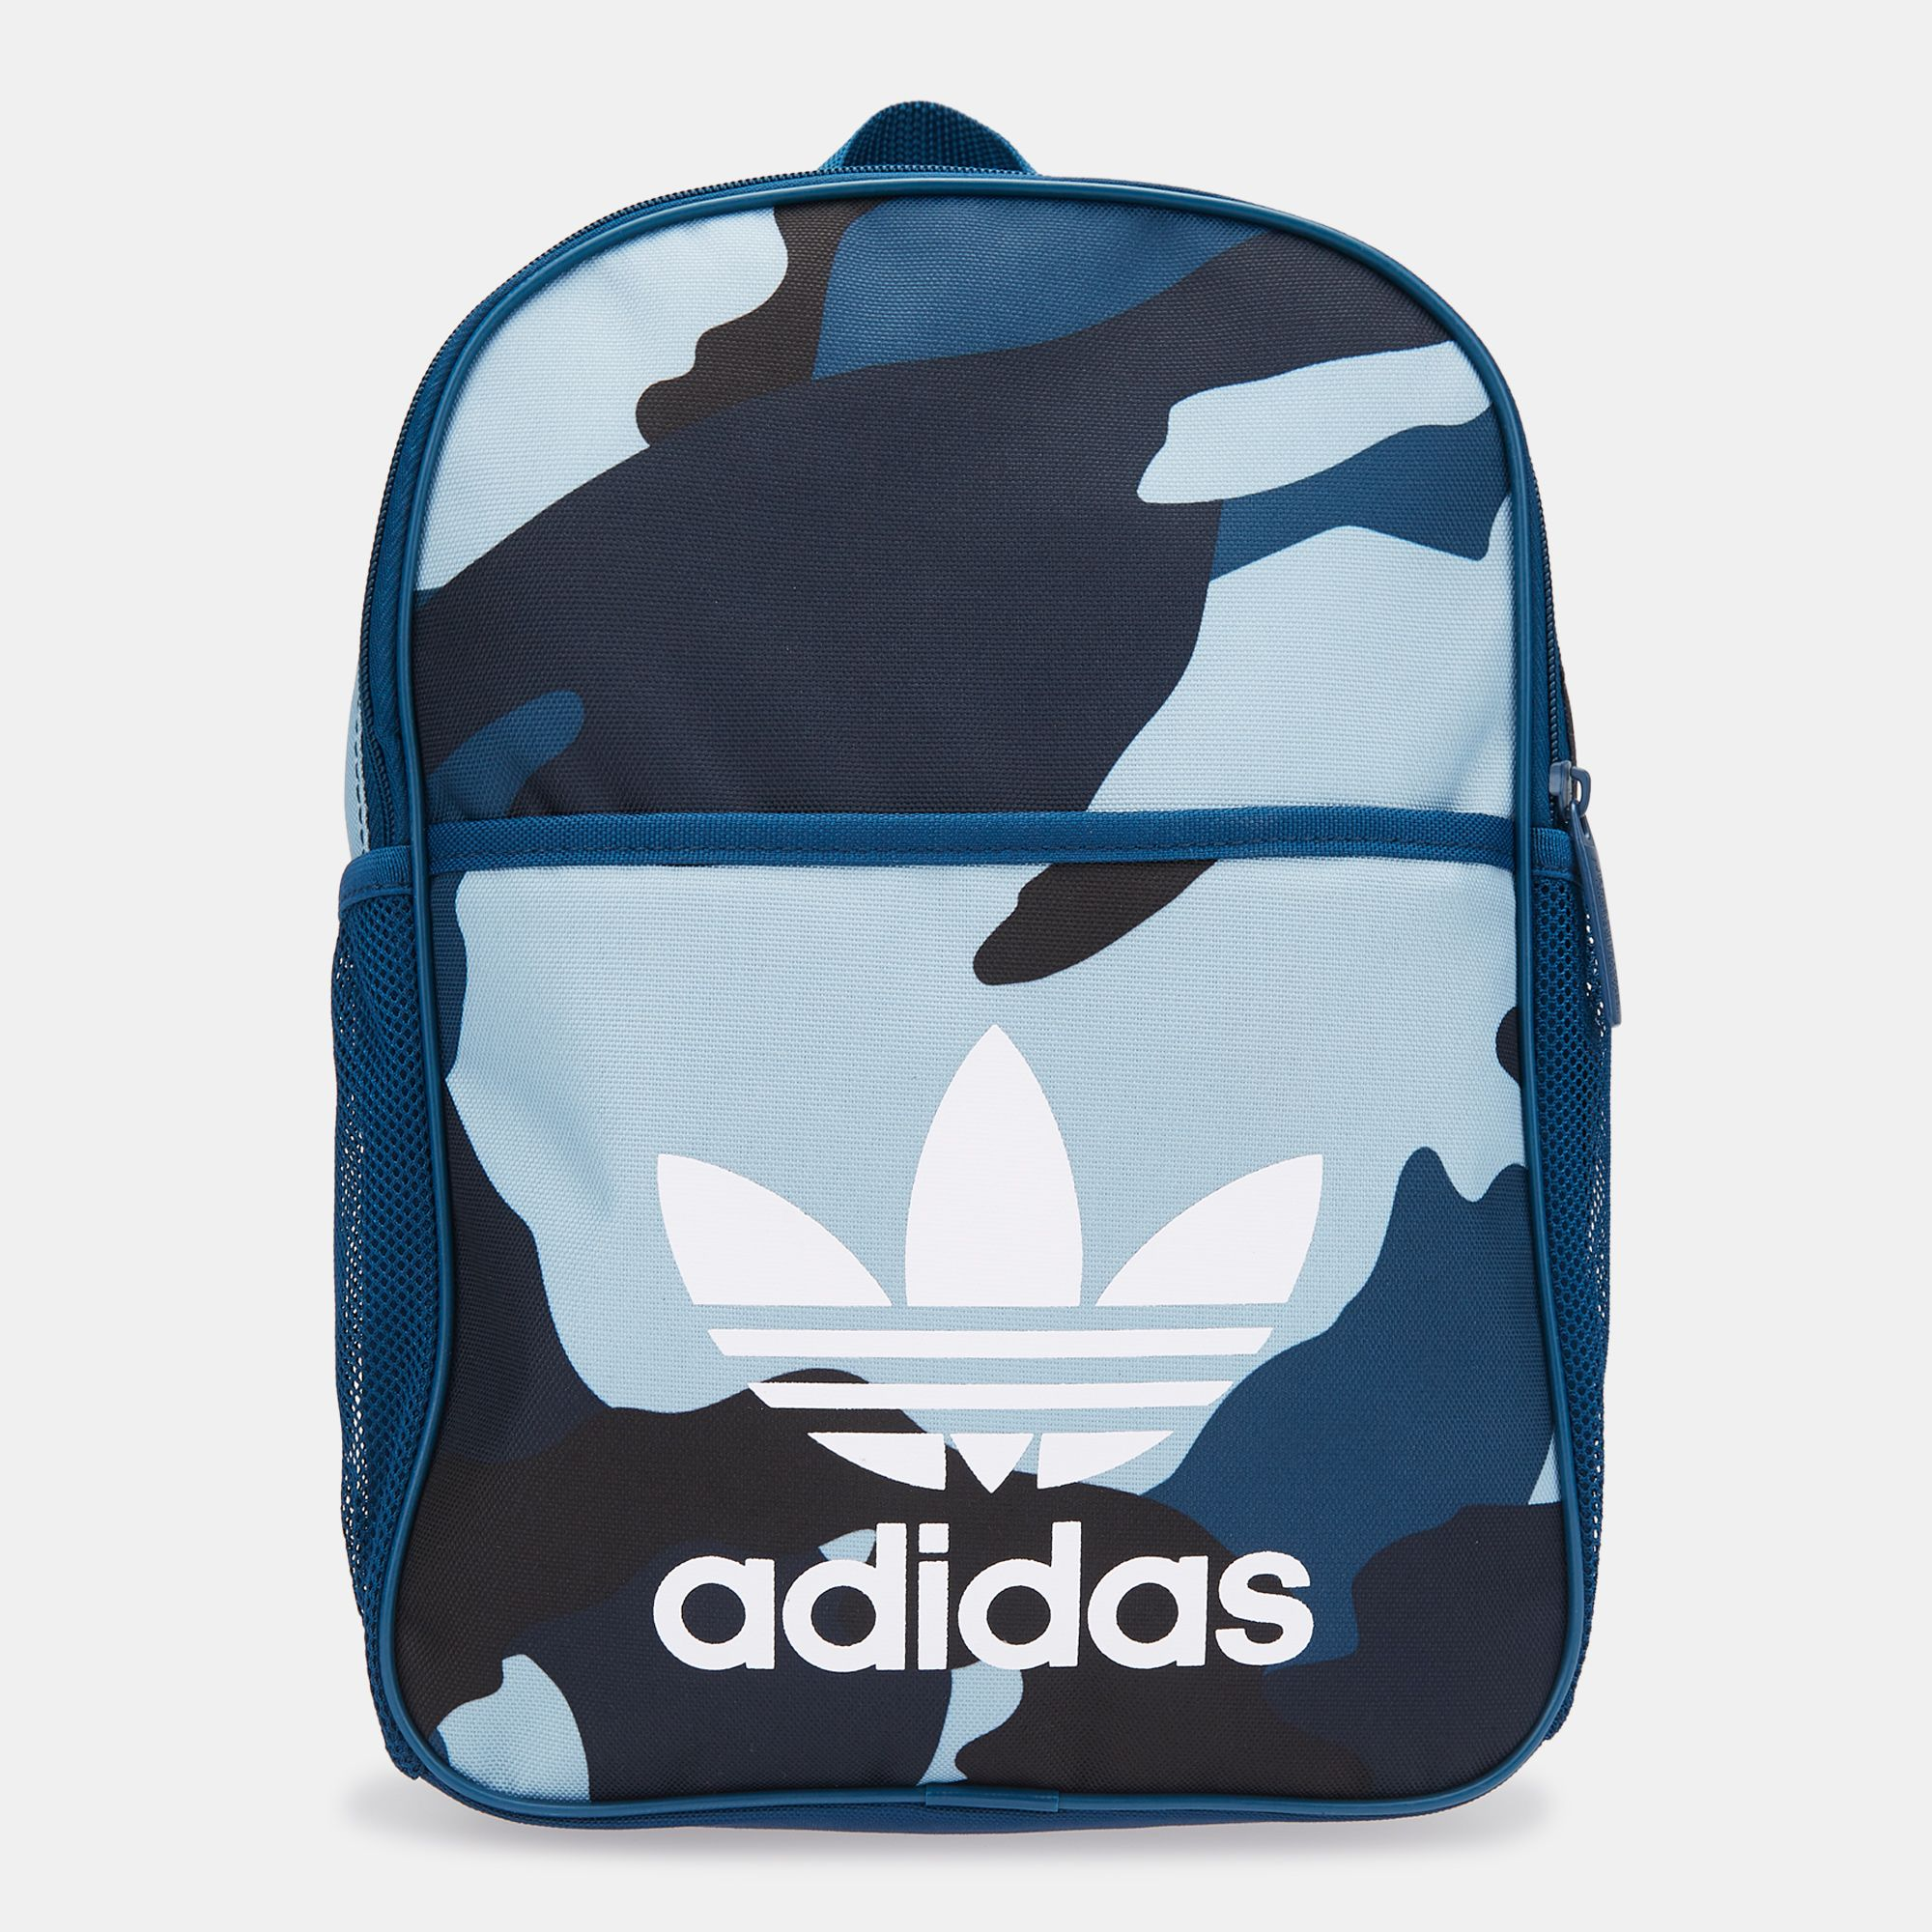 Permanente calina Tiranía  adidas Originals Kids' Classic Mini Backpack (Kids & Toddlers) | Backpacks  and Rucksacks | Bags and Luggage | Accessories | Kids | SSS